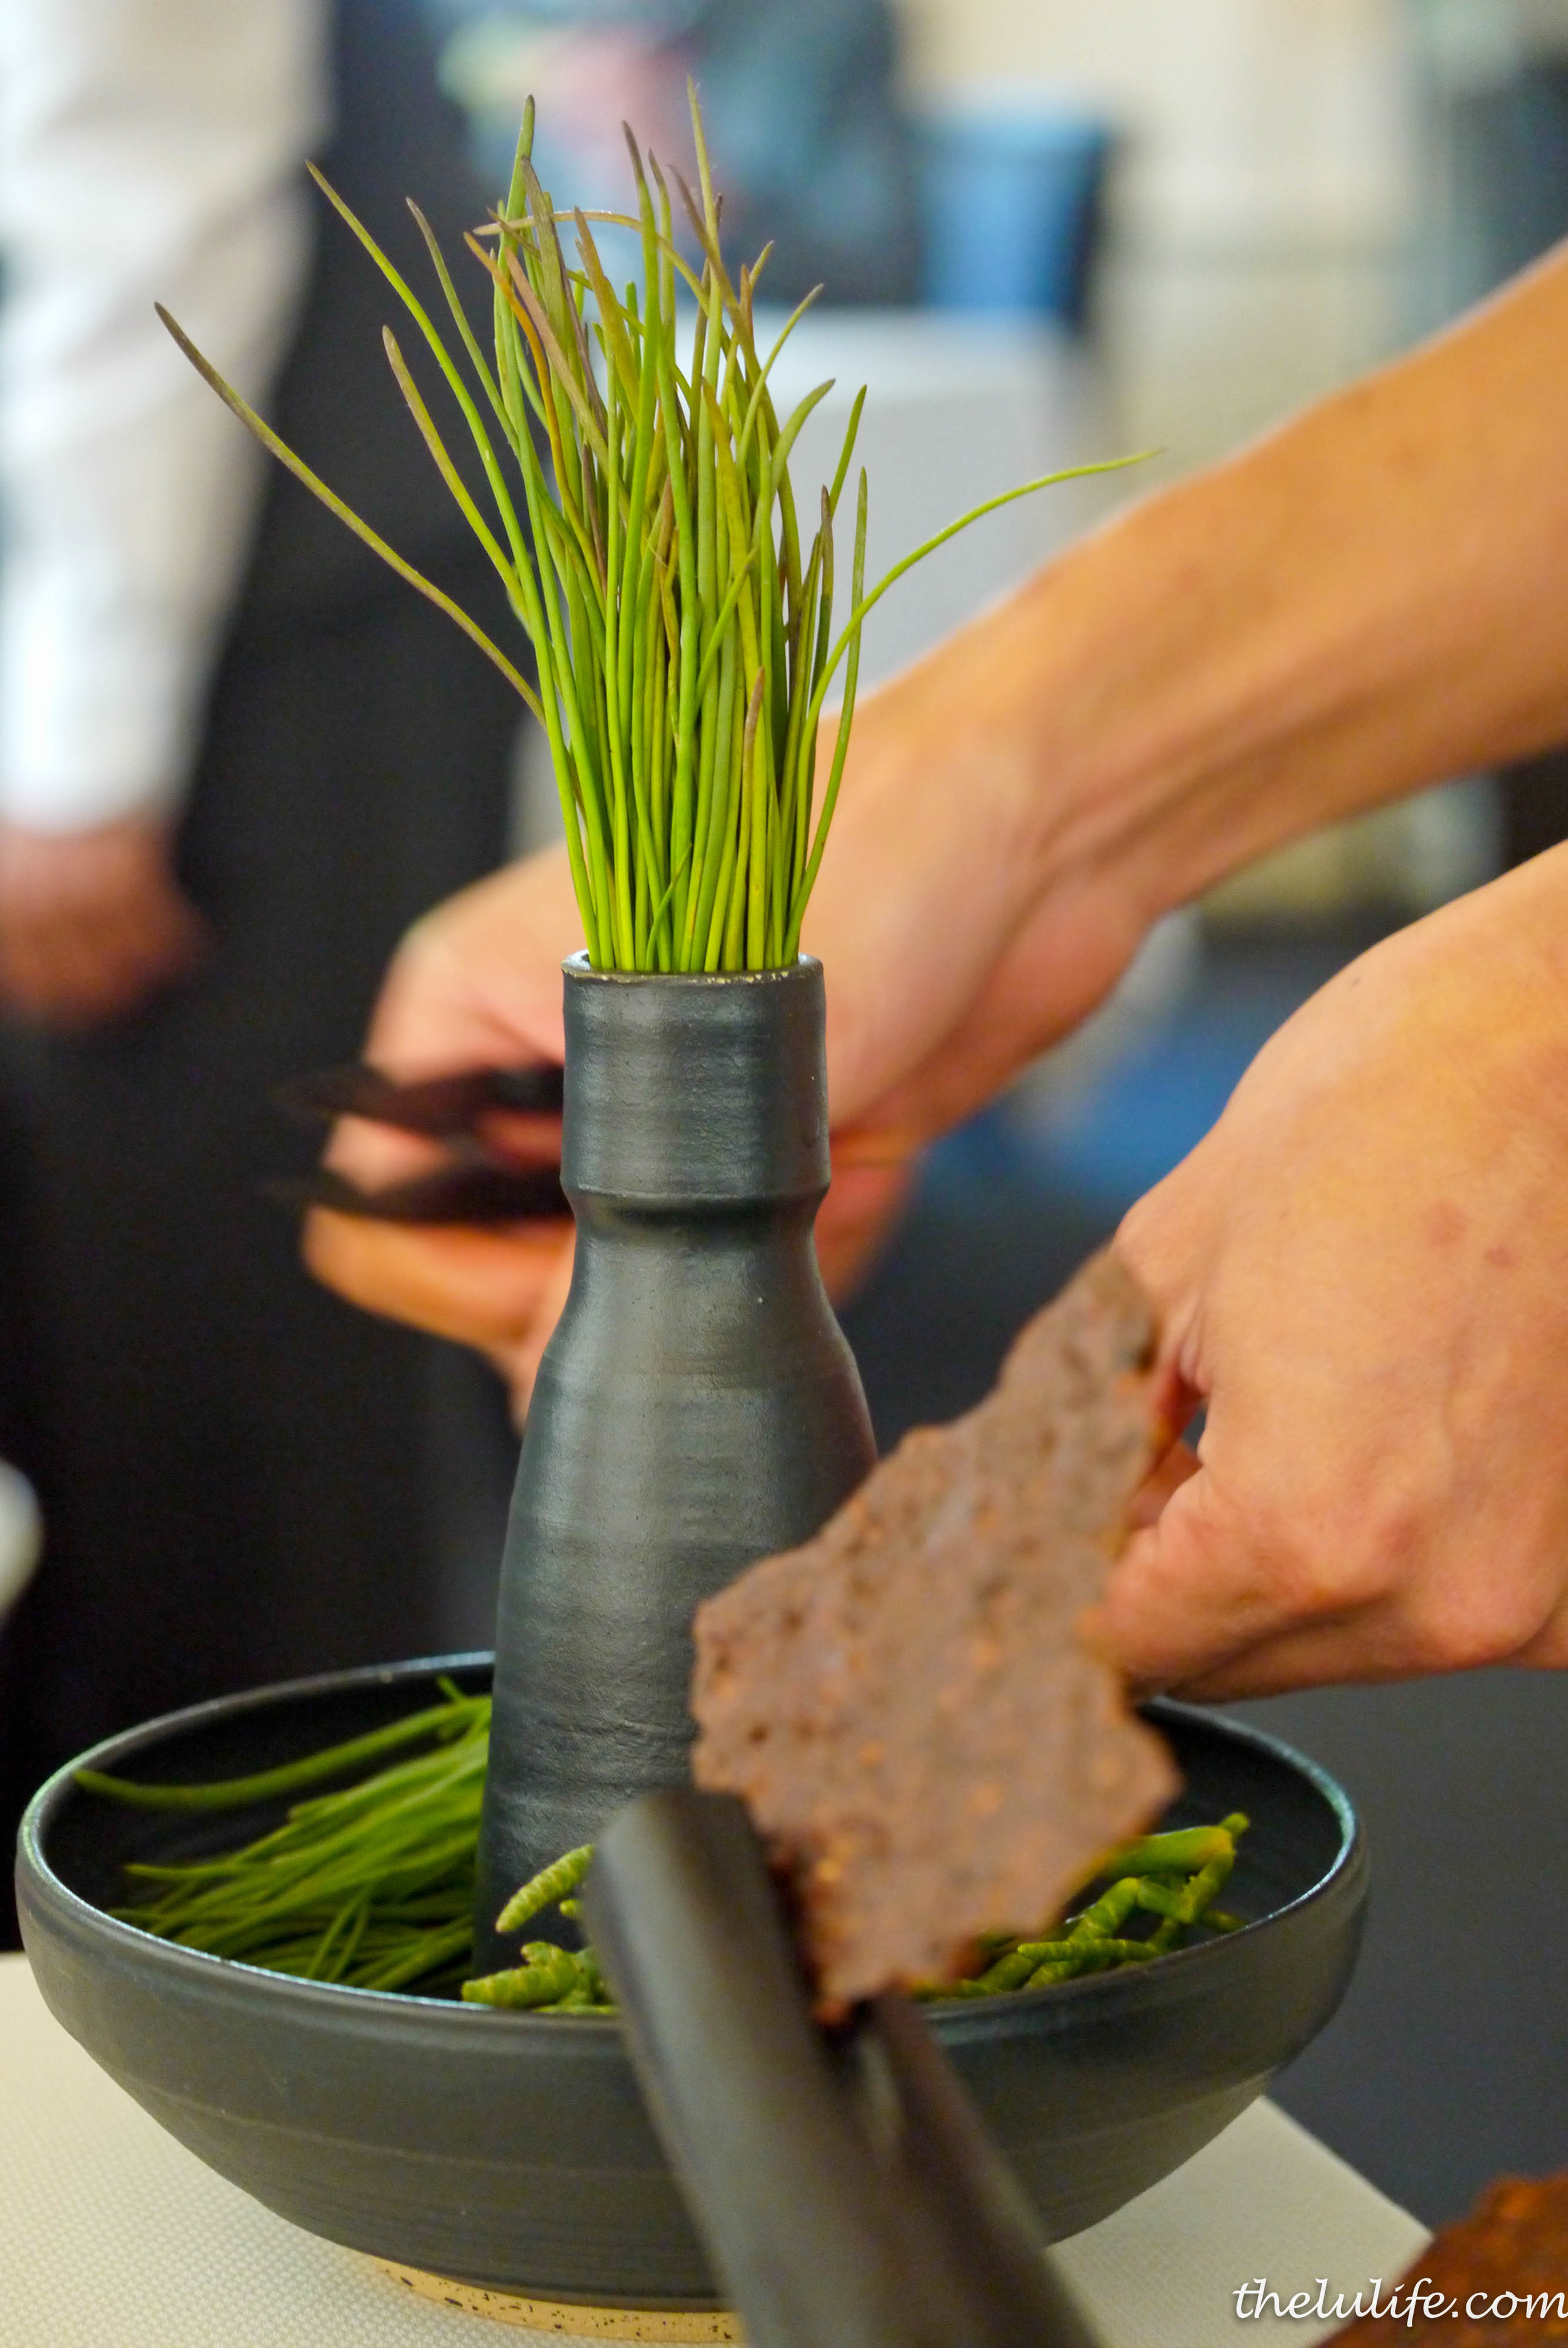 Course #3: Our server clipping the coastal grasses picked by the forager